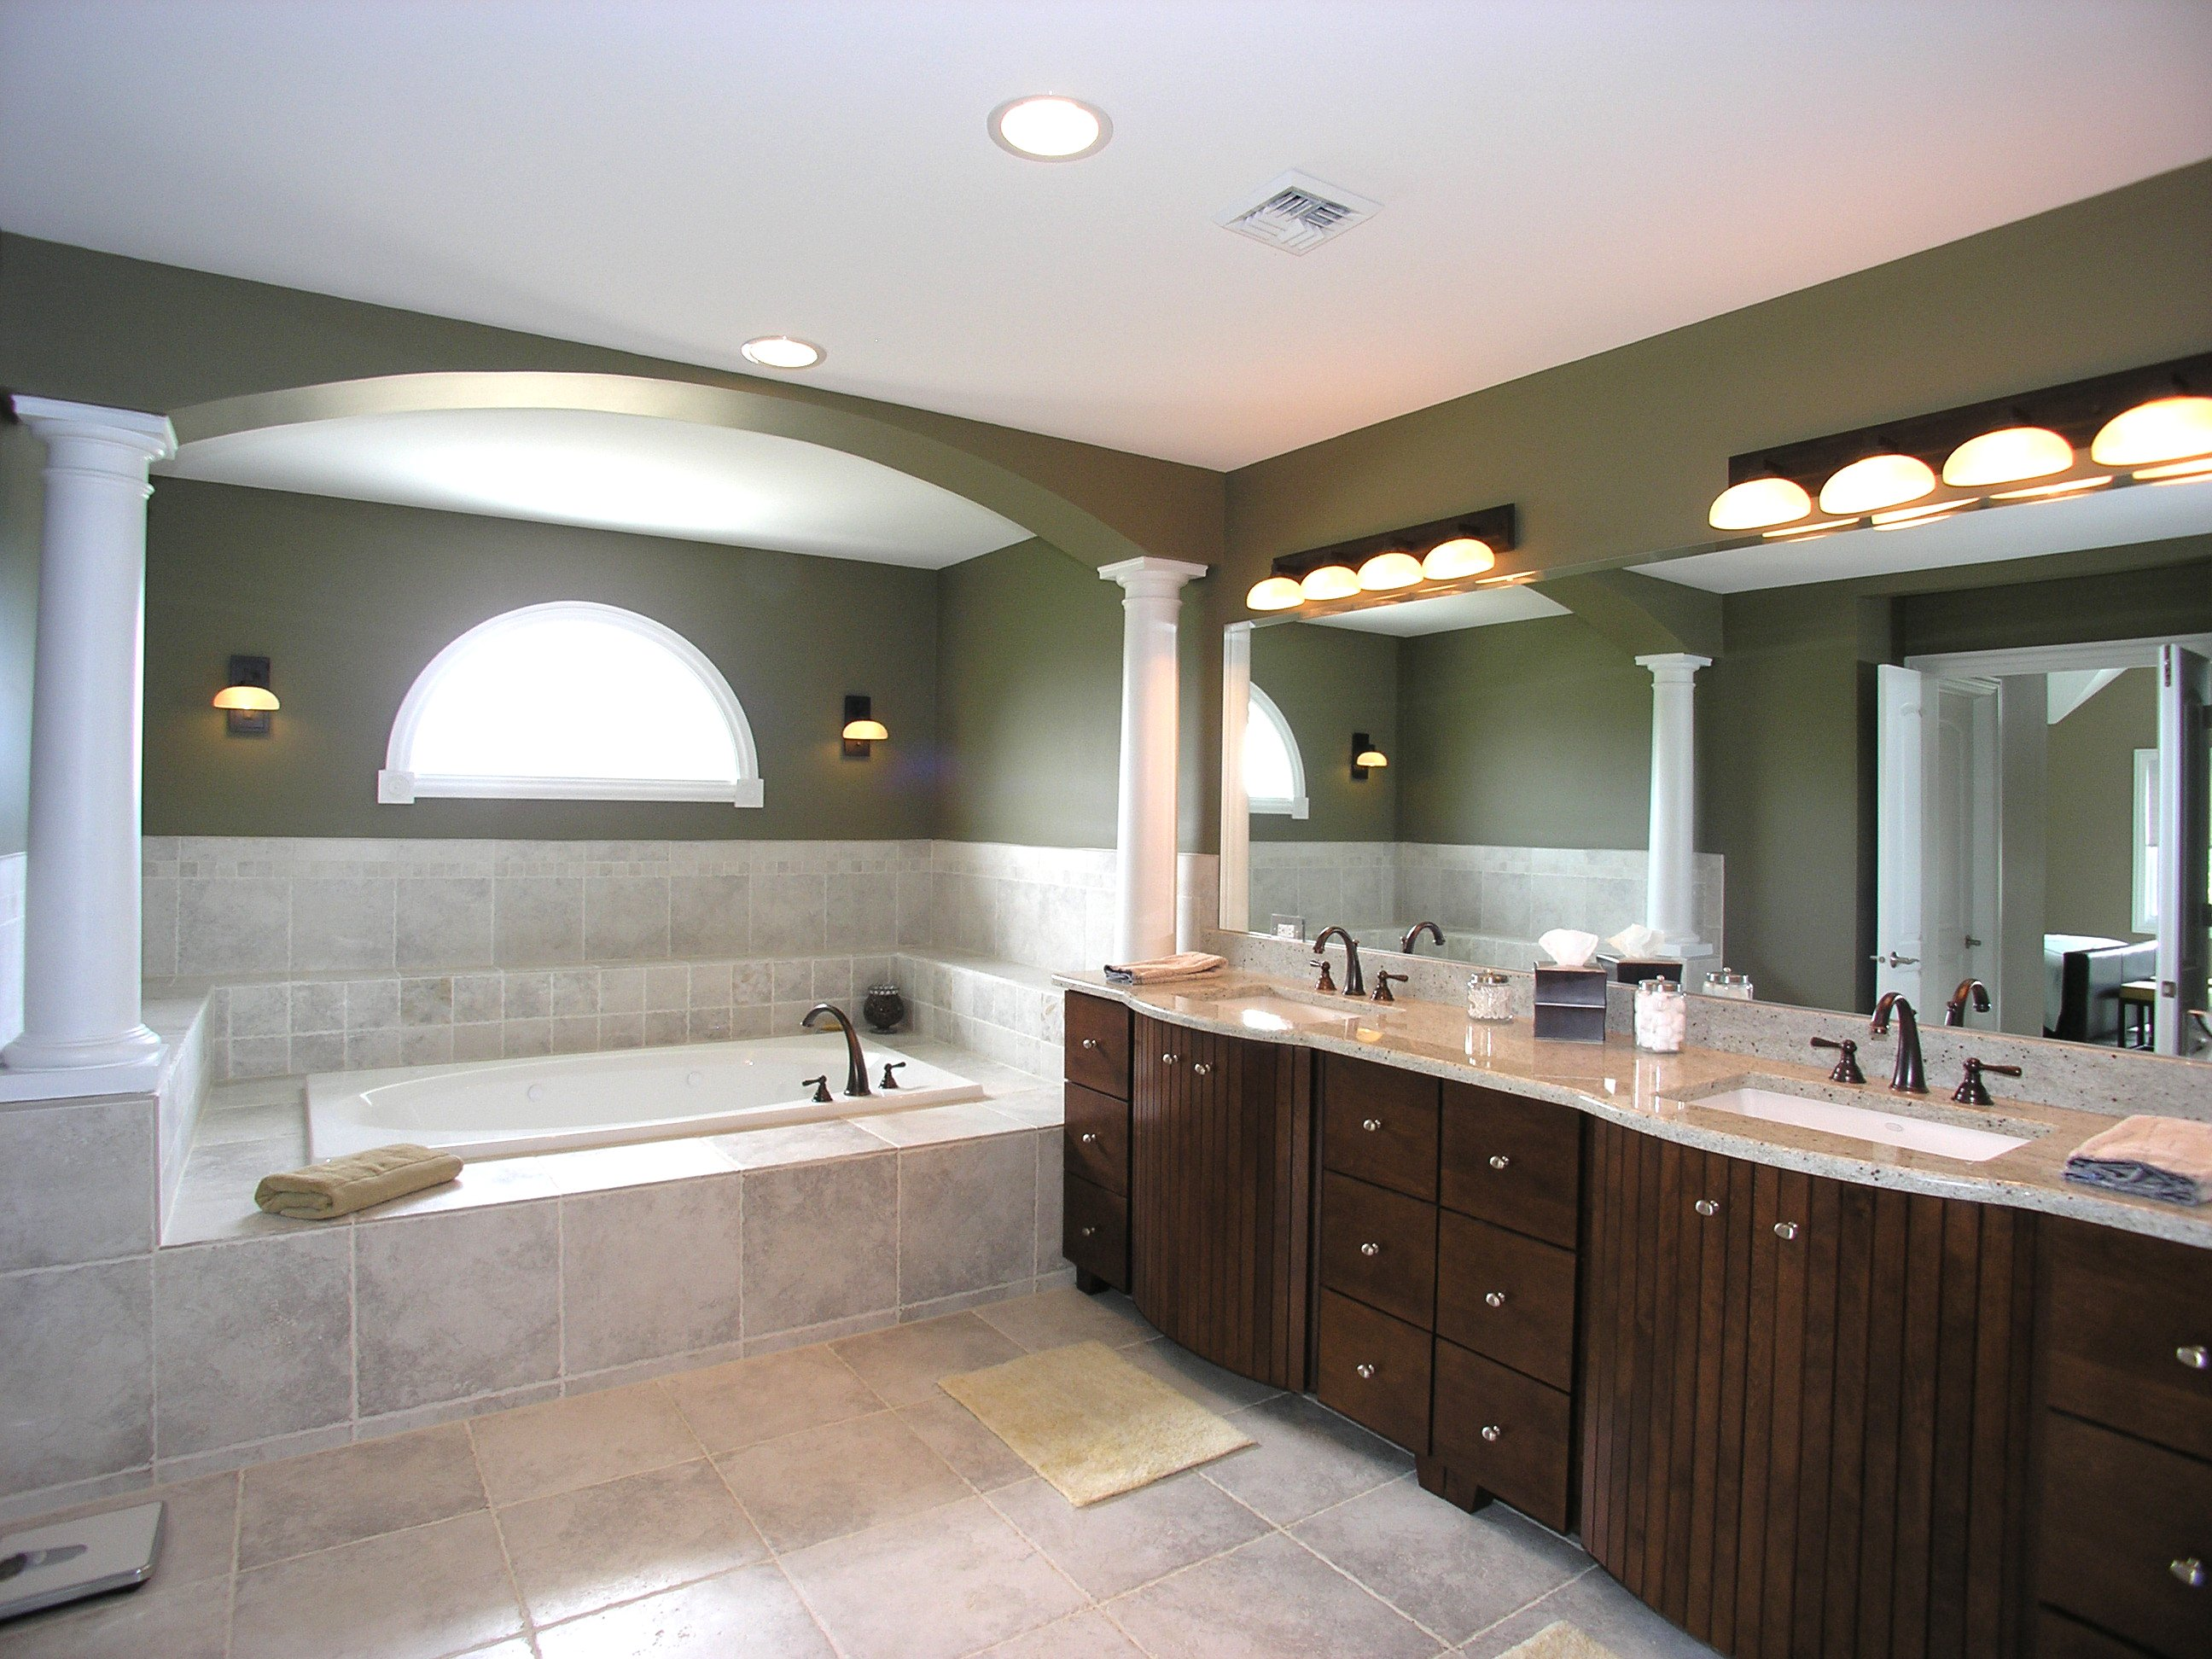 Bathroom Cabinets Knoxville Tn knoxville plumbing | knoxville plumbers blog – plumber | emergency